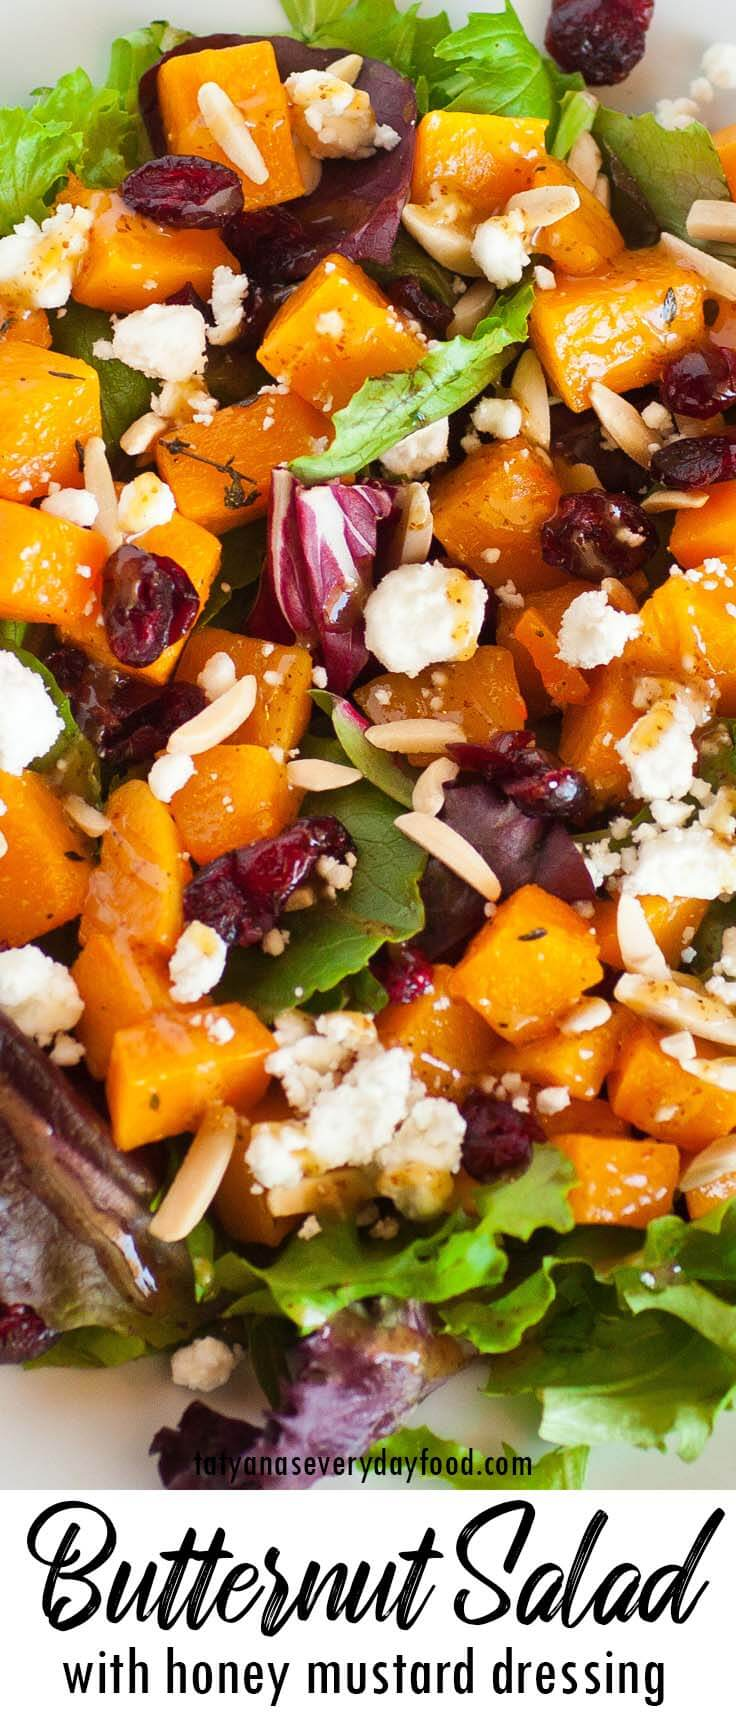 Oven-Roasted Butternut Squash Salad video recipe